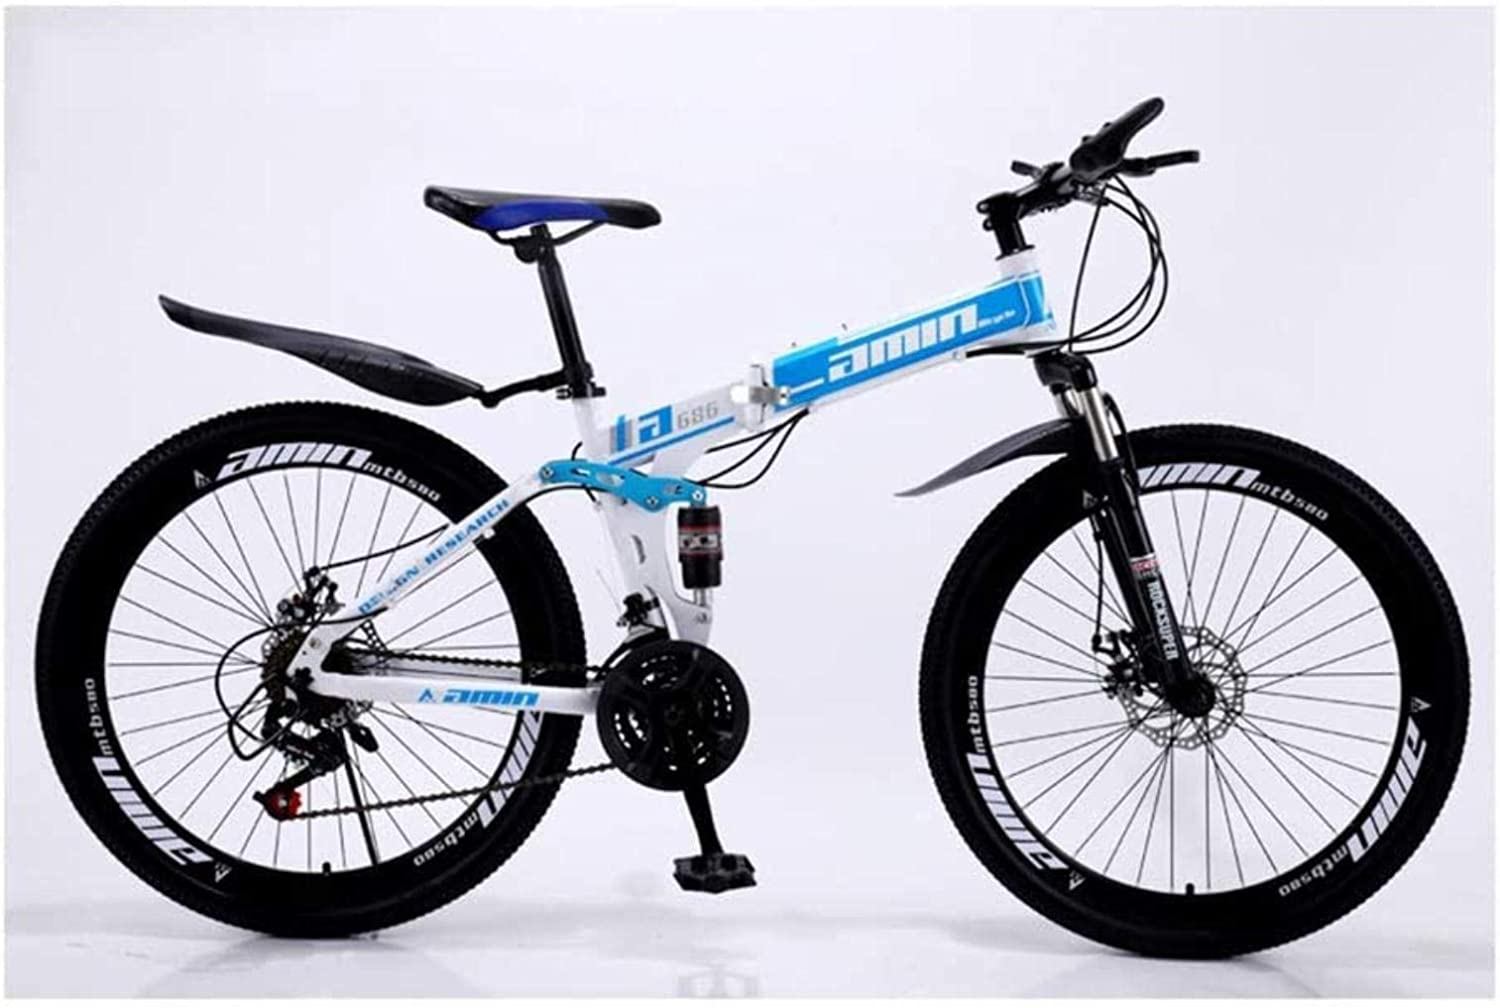 MJY 24 Inches Boy Mountain Bike, 30 Speed Spoke Wheel Folding Carbon Steel Bicycles, Double Shock Variable Speed Bicycle, Unisex 6-24),24in (30 Speed)